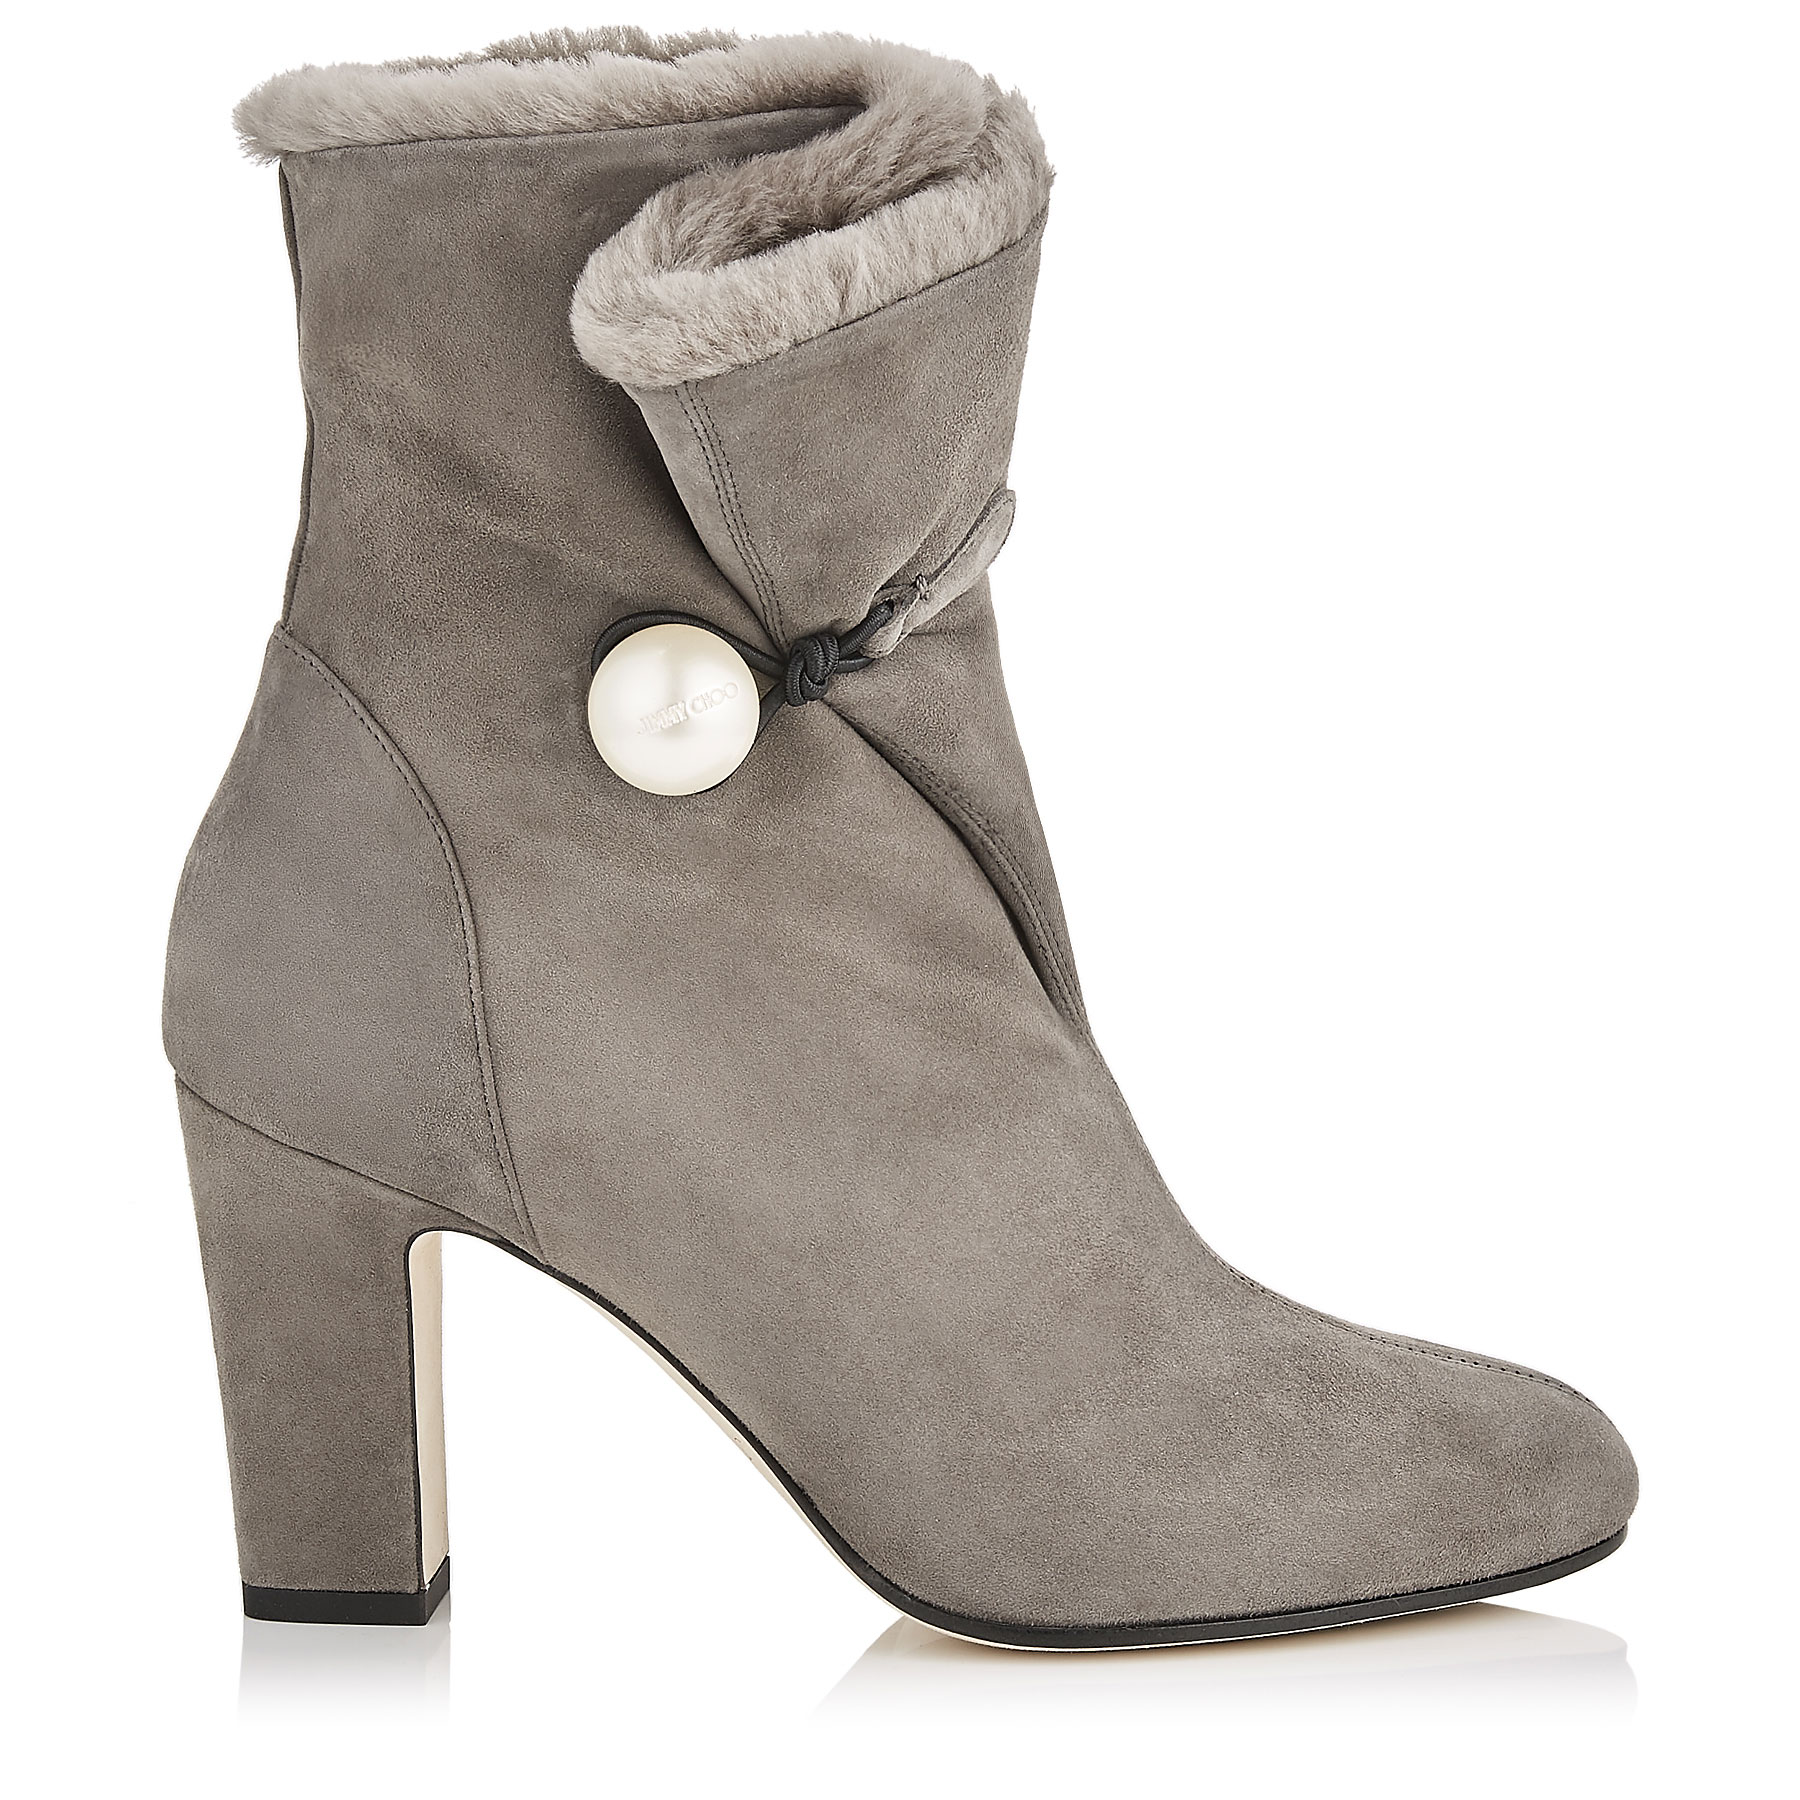 BETHANIE 85 Dark Grey Suede Leather Booties with Shearling Lining by Jimmy Choo